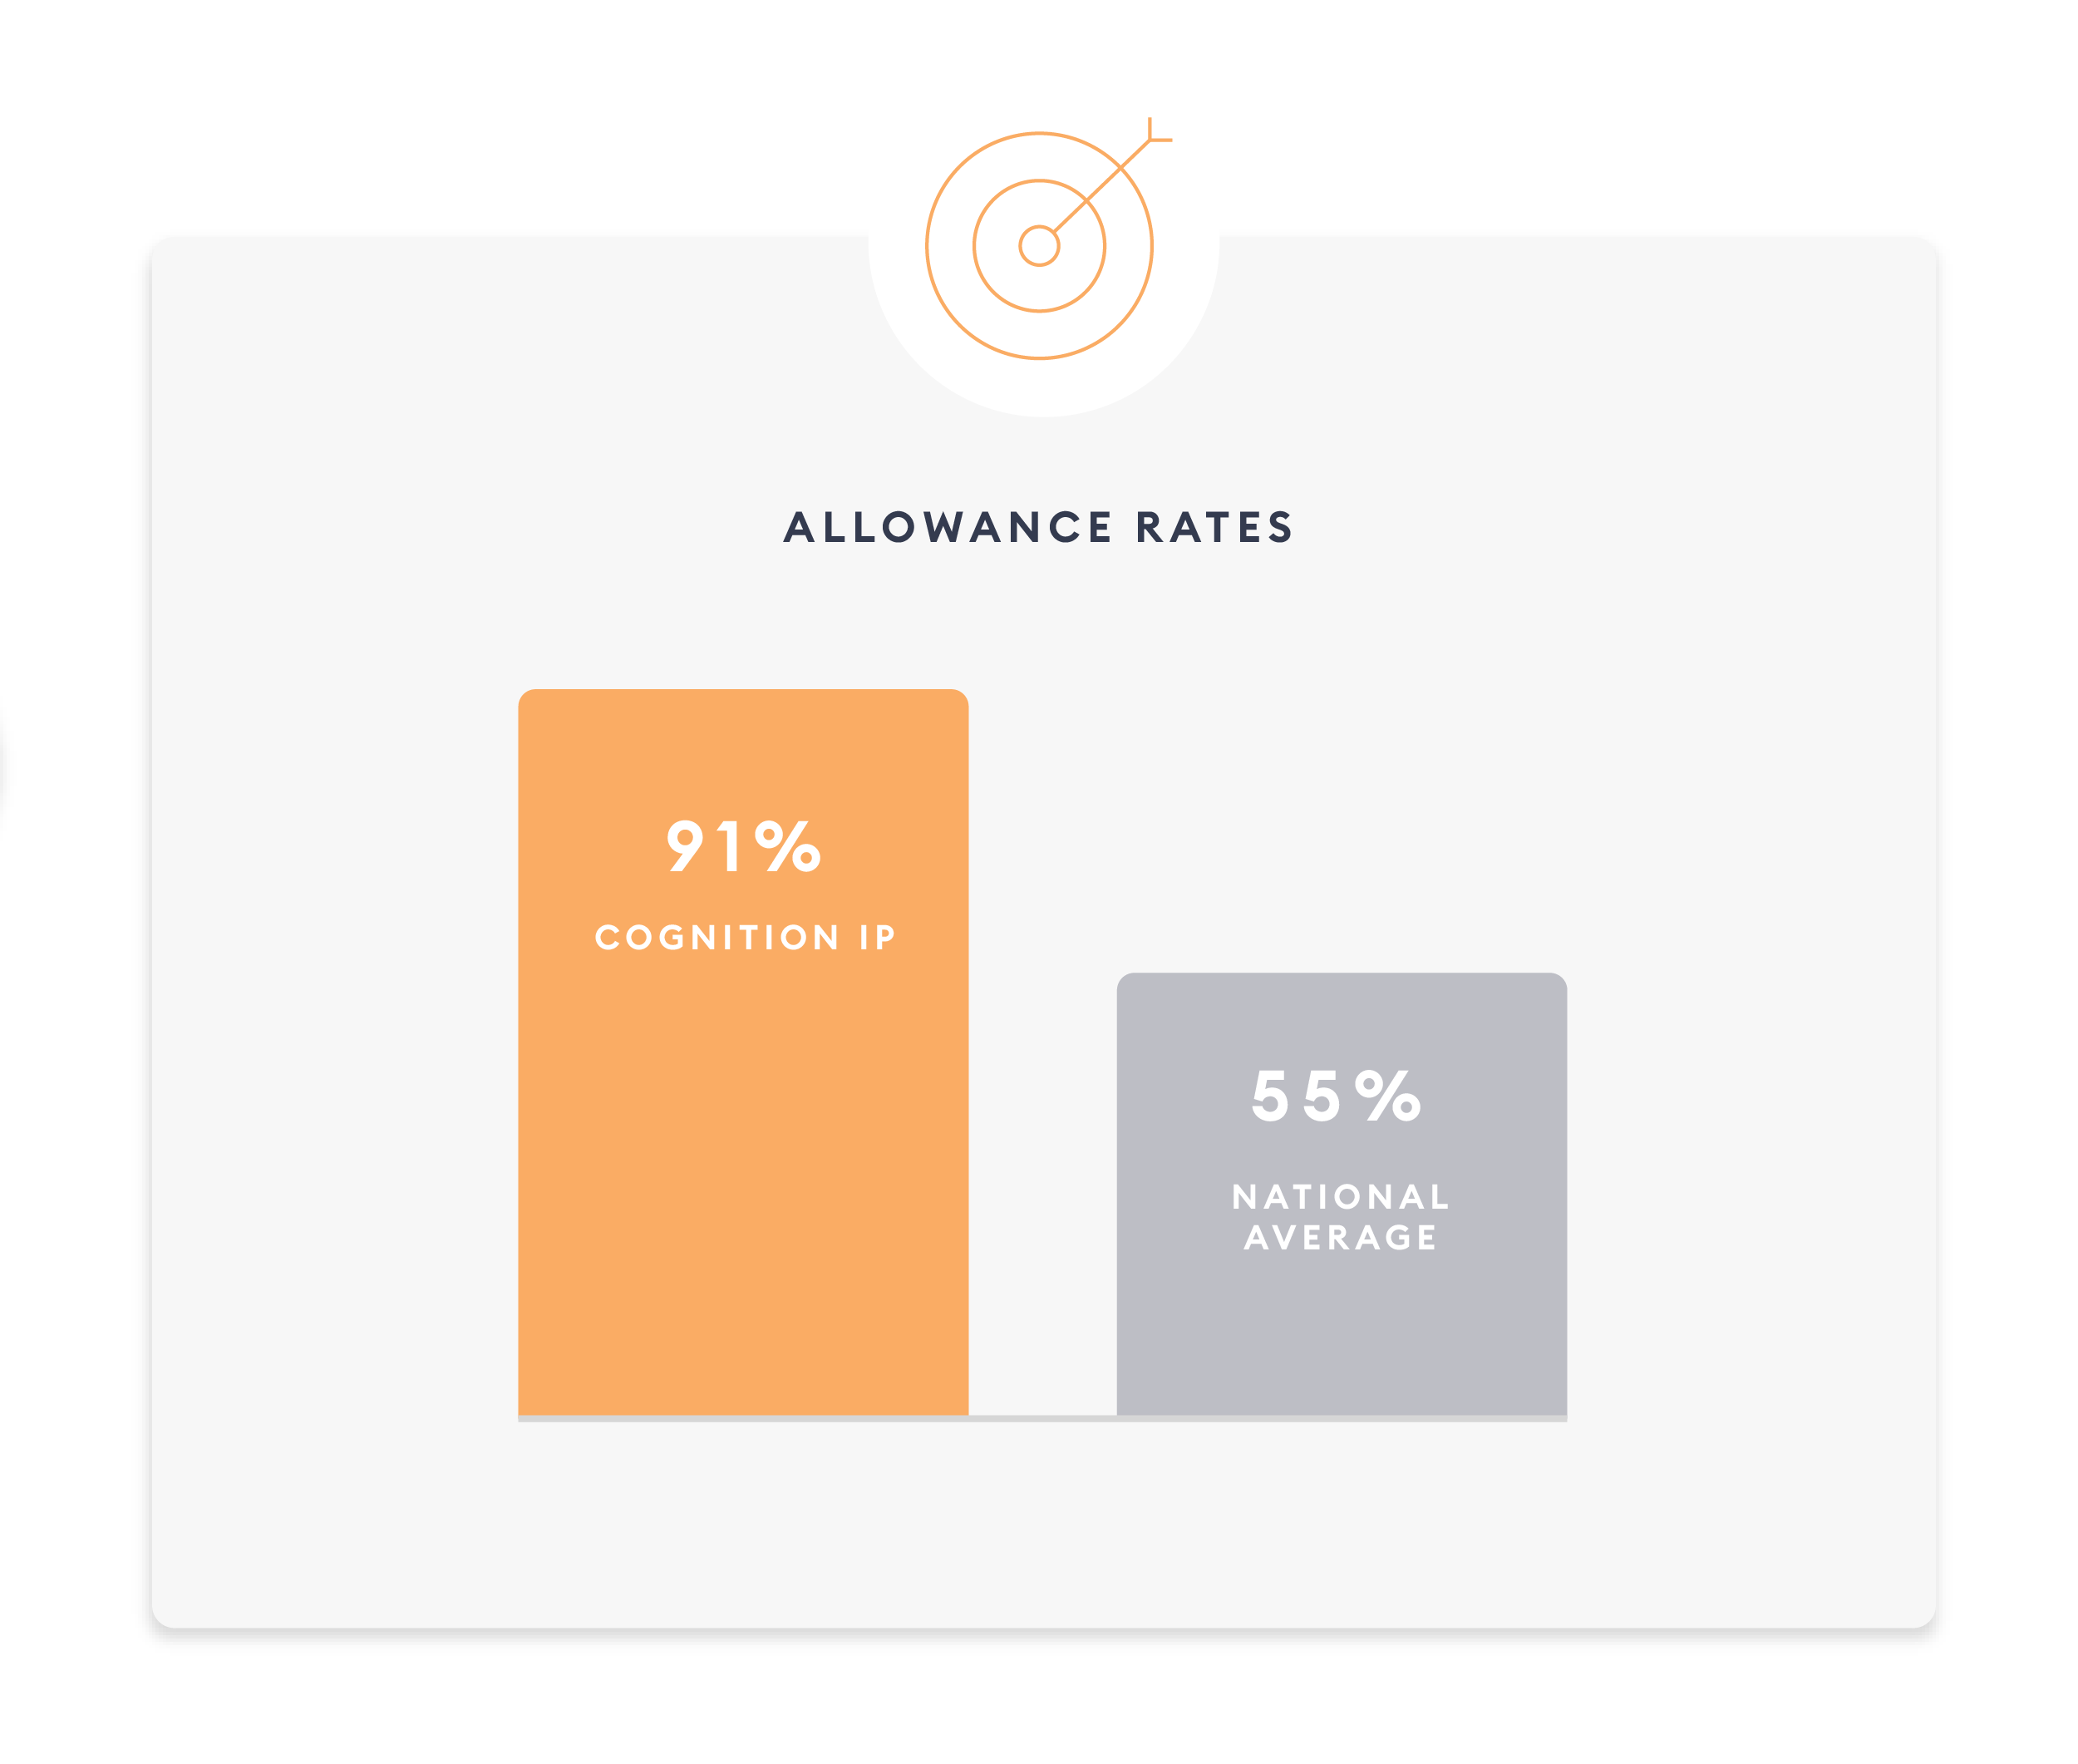 bar graph showing cognition ip's 91% allowance rate